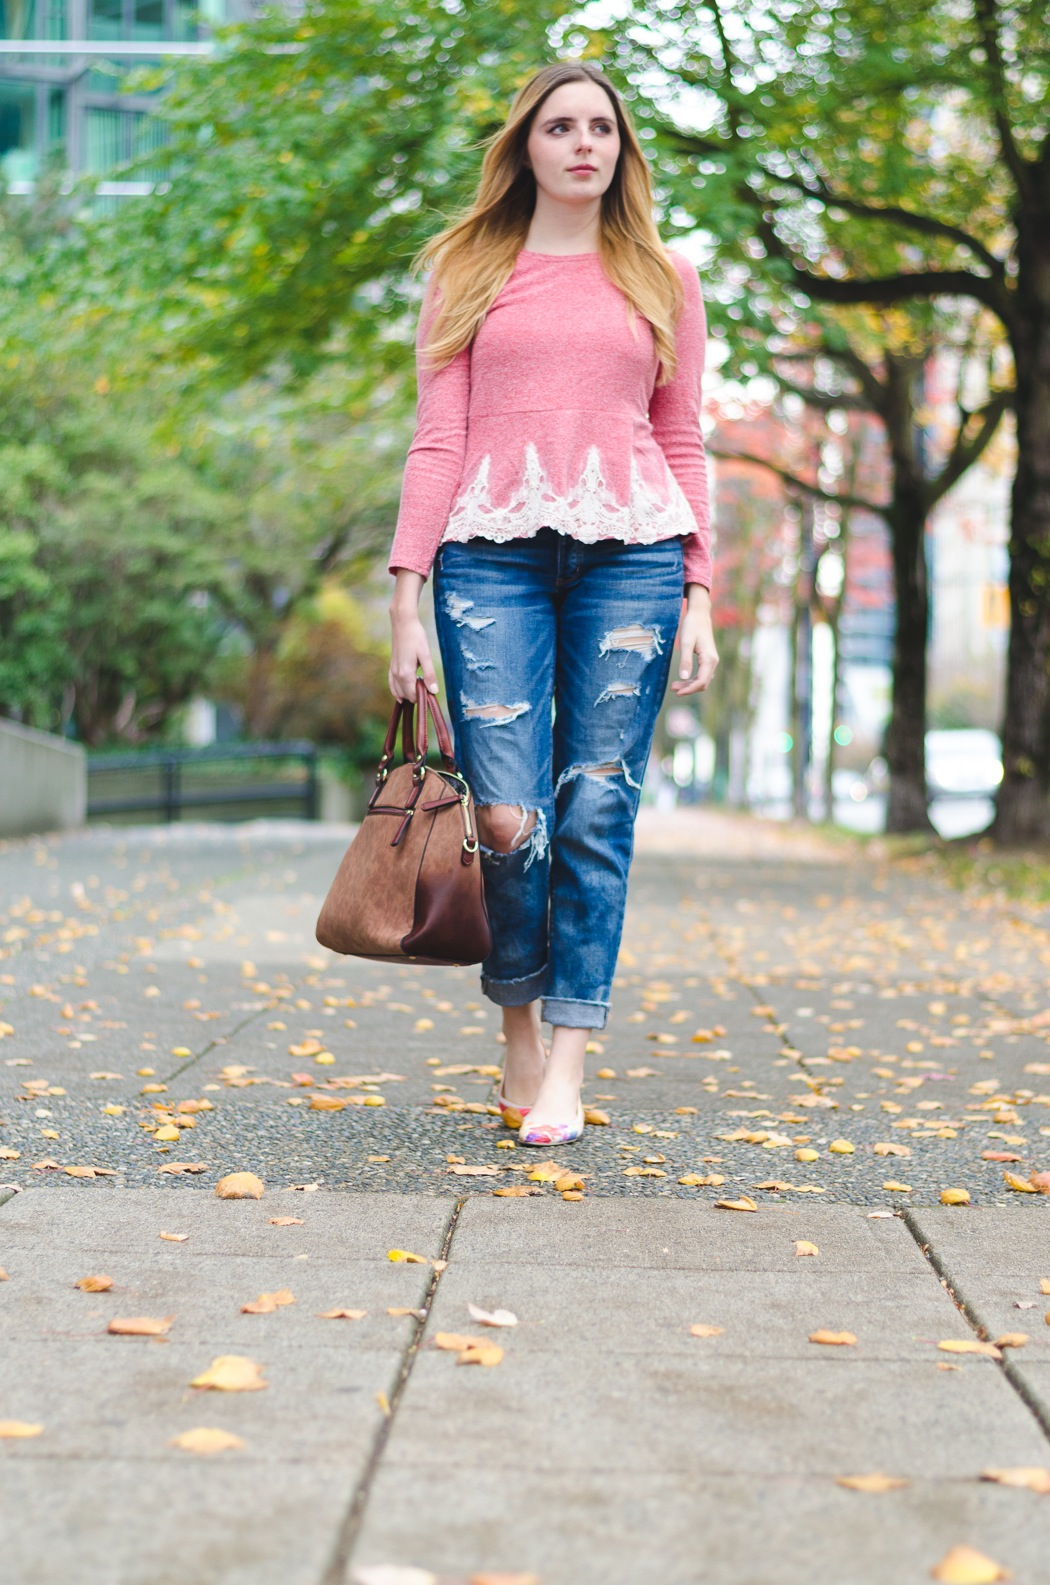 the urban umbrella style blog, vancouver style blog, vancouver style blogger, vancouver fashion blog, vancouver lifestyle blog, vancouver health blog, vancouver fitness blog, vancouver travel blog, canadian fashion blog, canadian style blog, canadian lifestyle blog, canadian health blog, canadian fitness blog, canadian travel blog, bree aylwin, how to style a peplum top, melange peplum blouse, lace trim peplum shirt, lookbookstore review, look book store peplum top, 25 birthday, how to style boyfriend jeans, 25 goals for 25, best health blogs, best travel blogs, top fashion blogs, top style blogs, top lifestyle blogs, top fitness blogs, top health blogs, top travel blogs